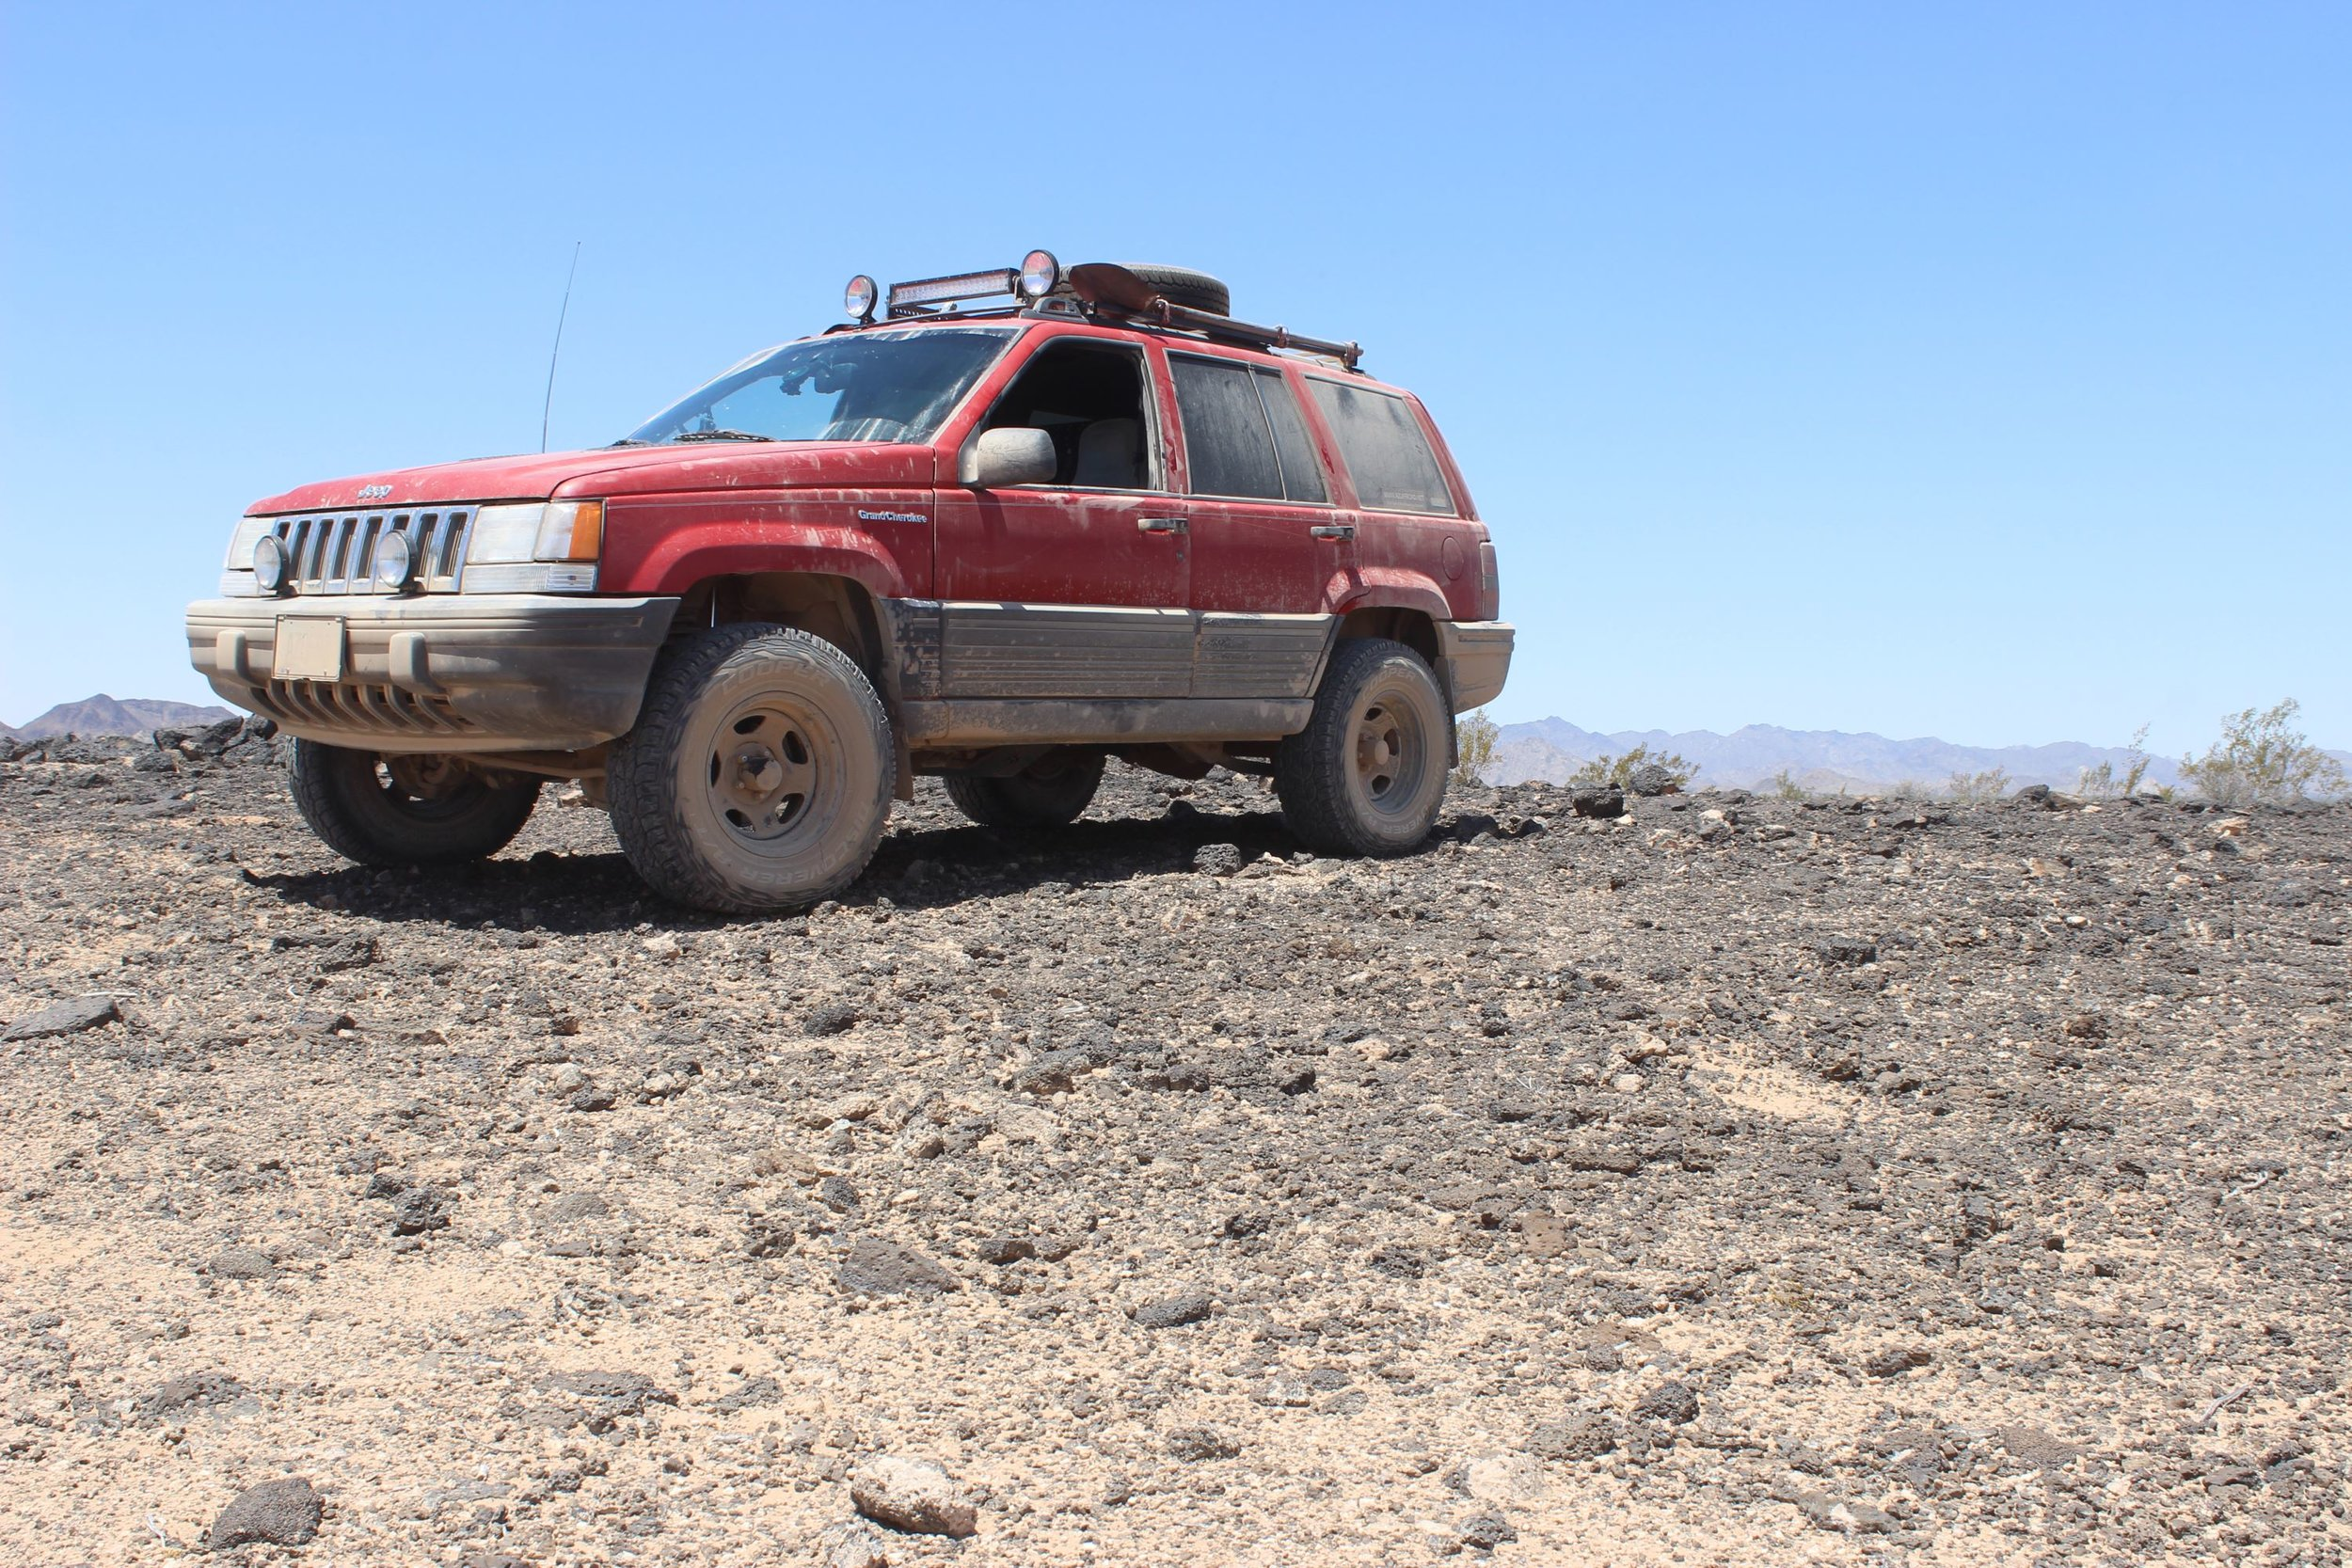 Perched on the Pinacate Lava Flow.